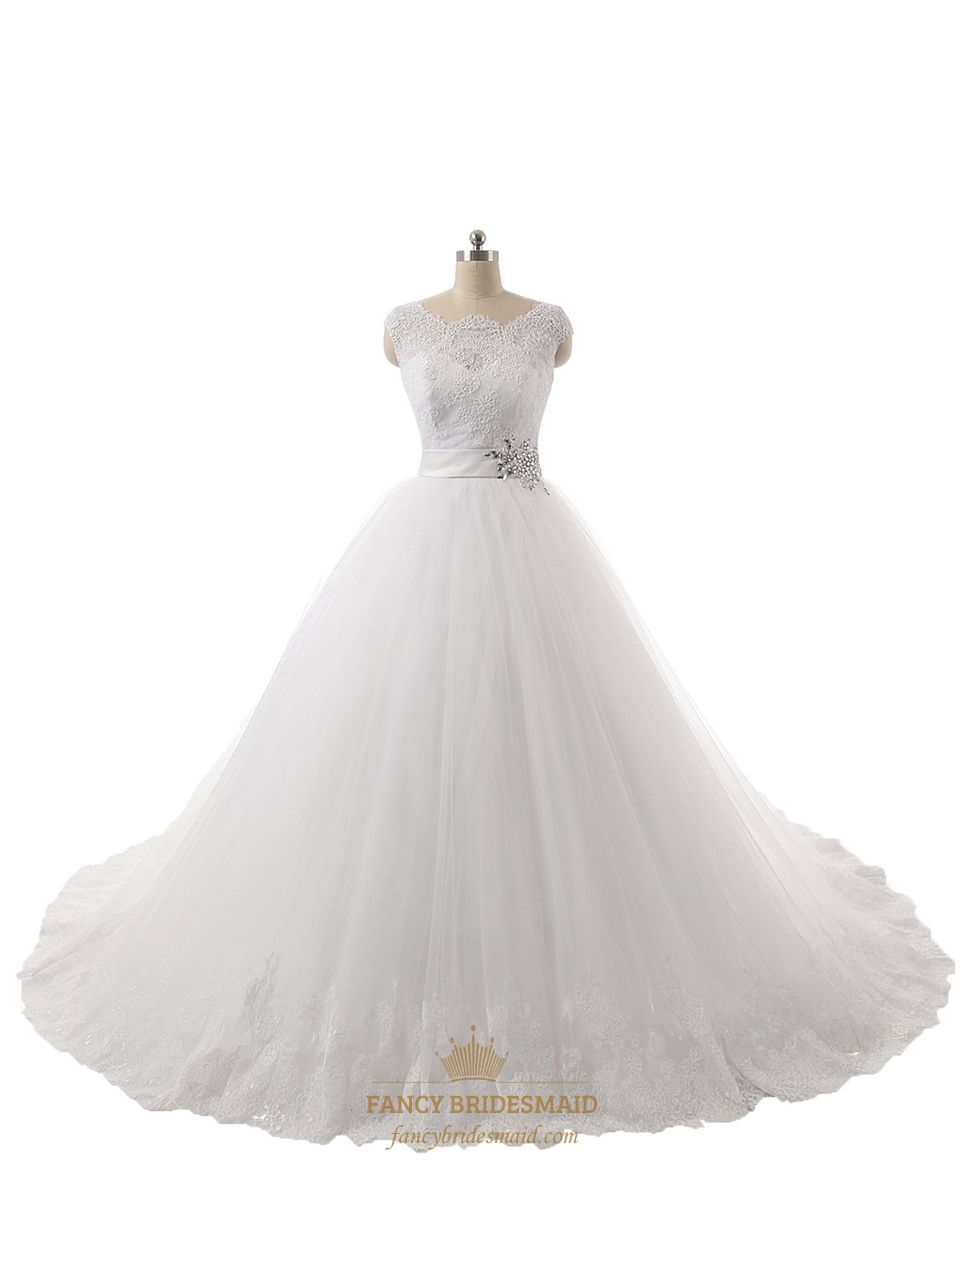 Clssic Ball Gown Sheer Cap Sleeves Lace Top Wedding Dress With ...